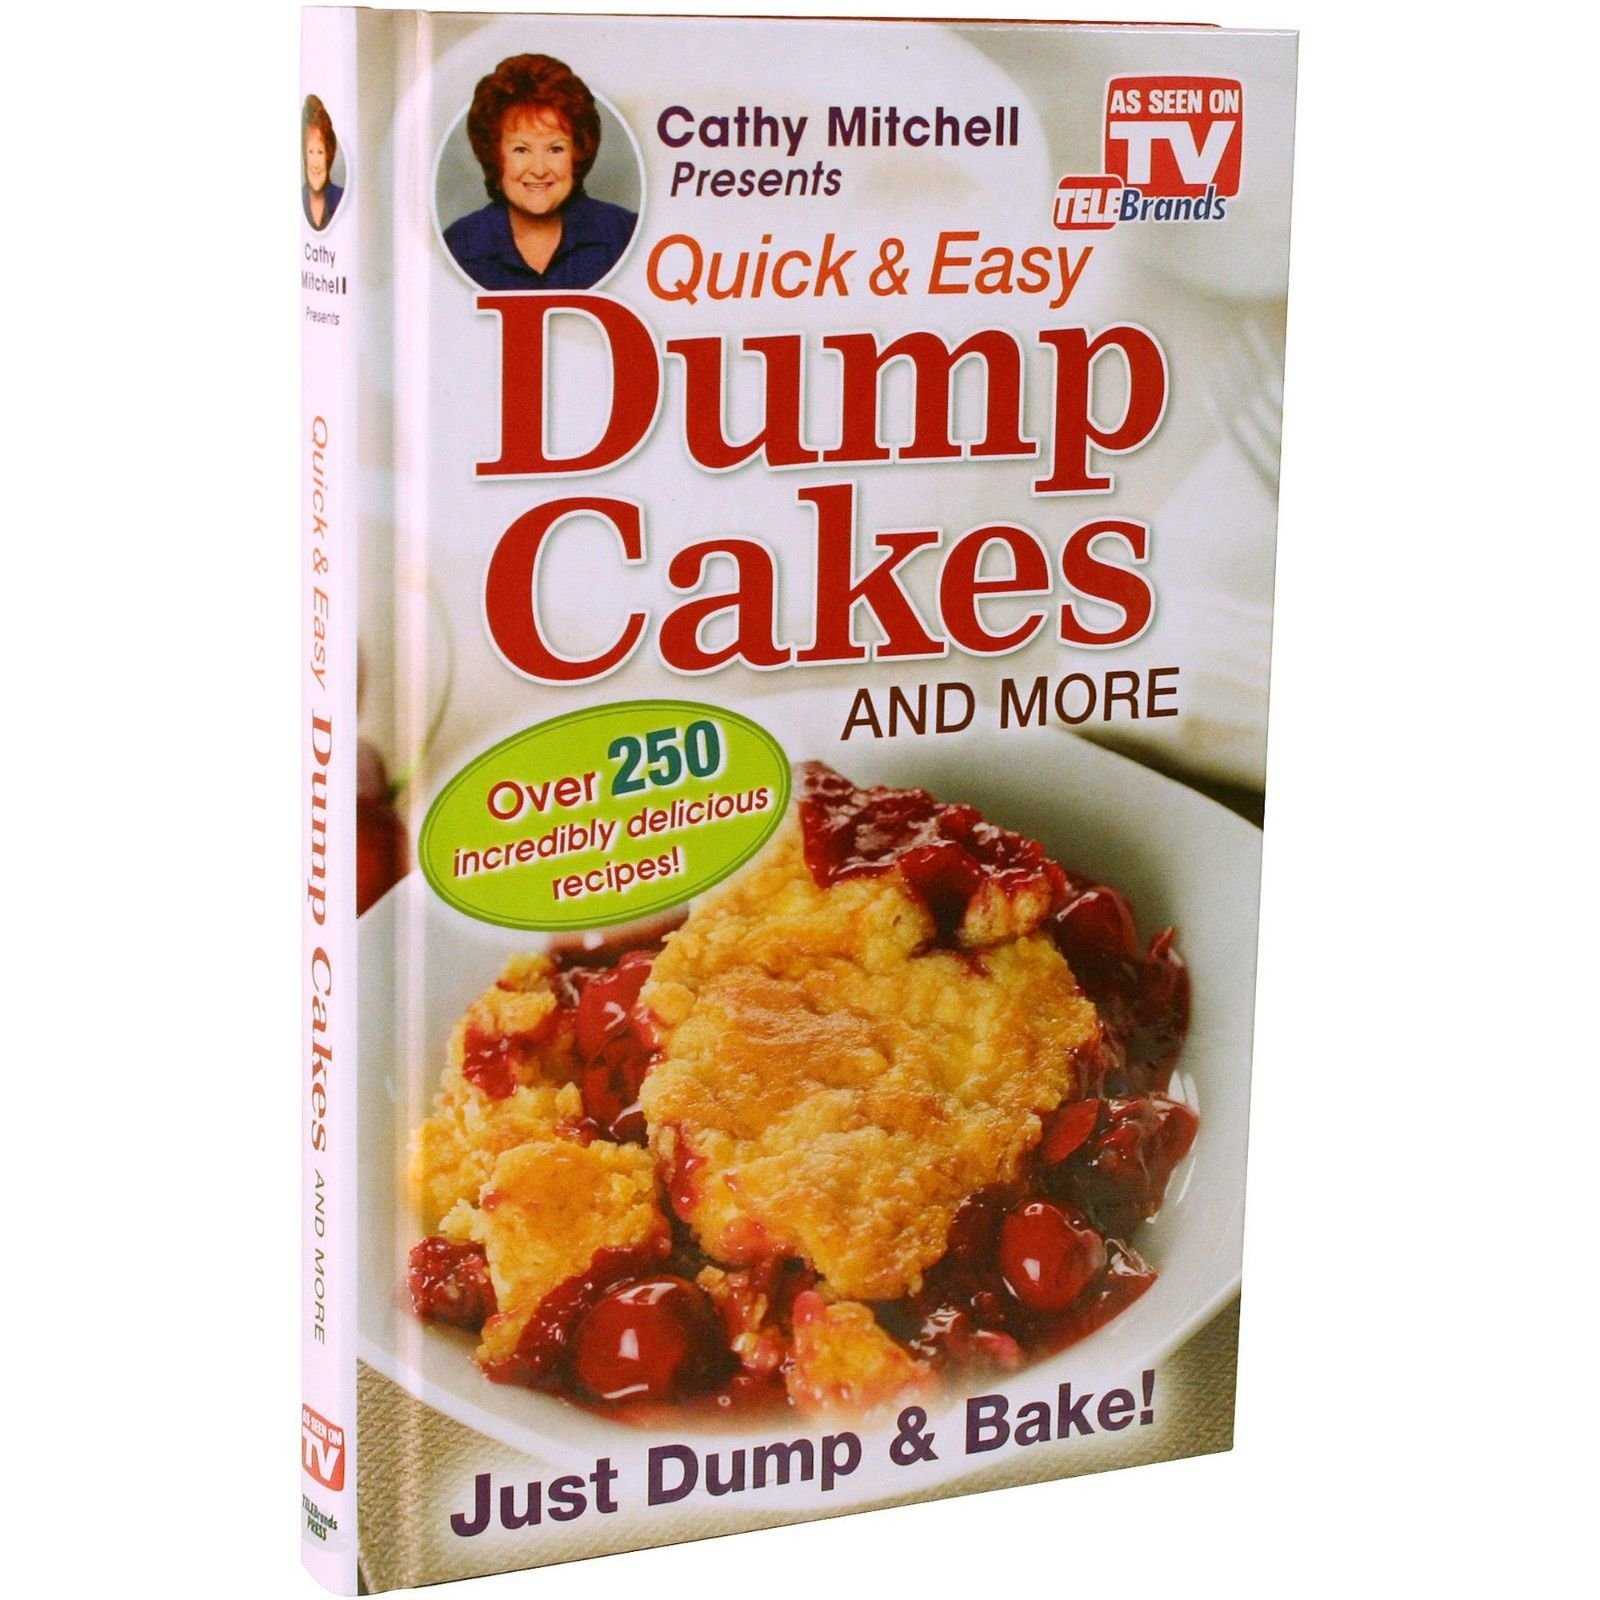 Quick Easy Dump Cakes More product image